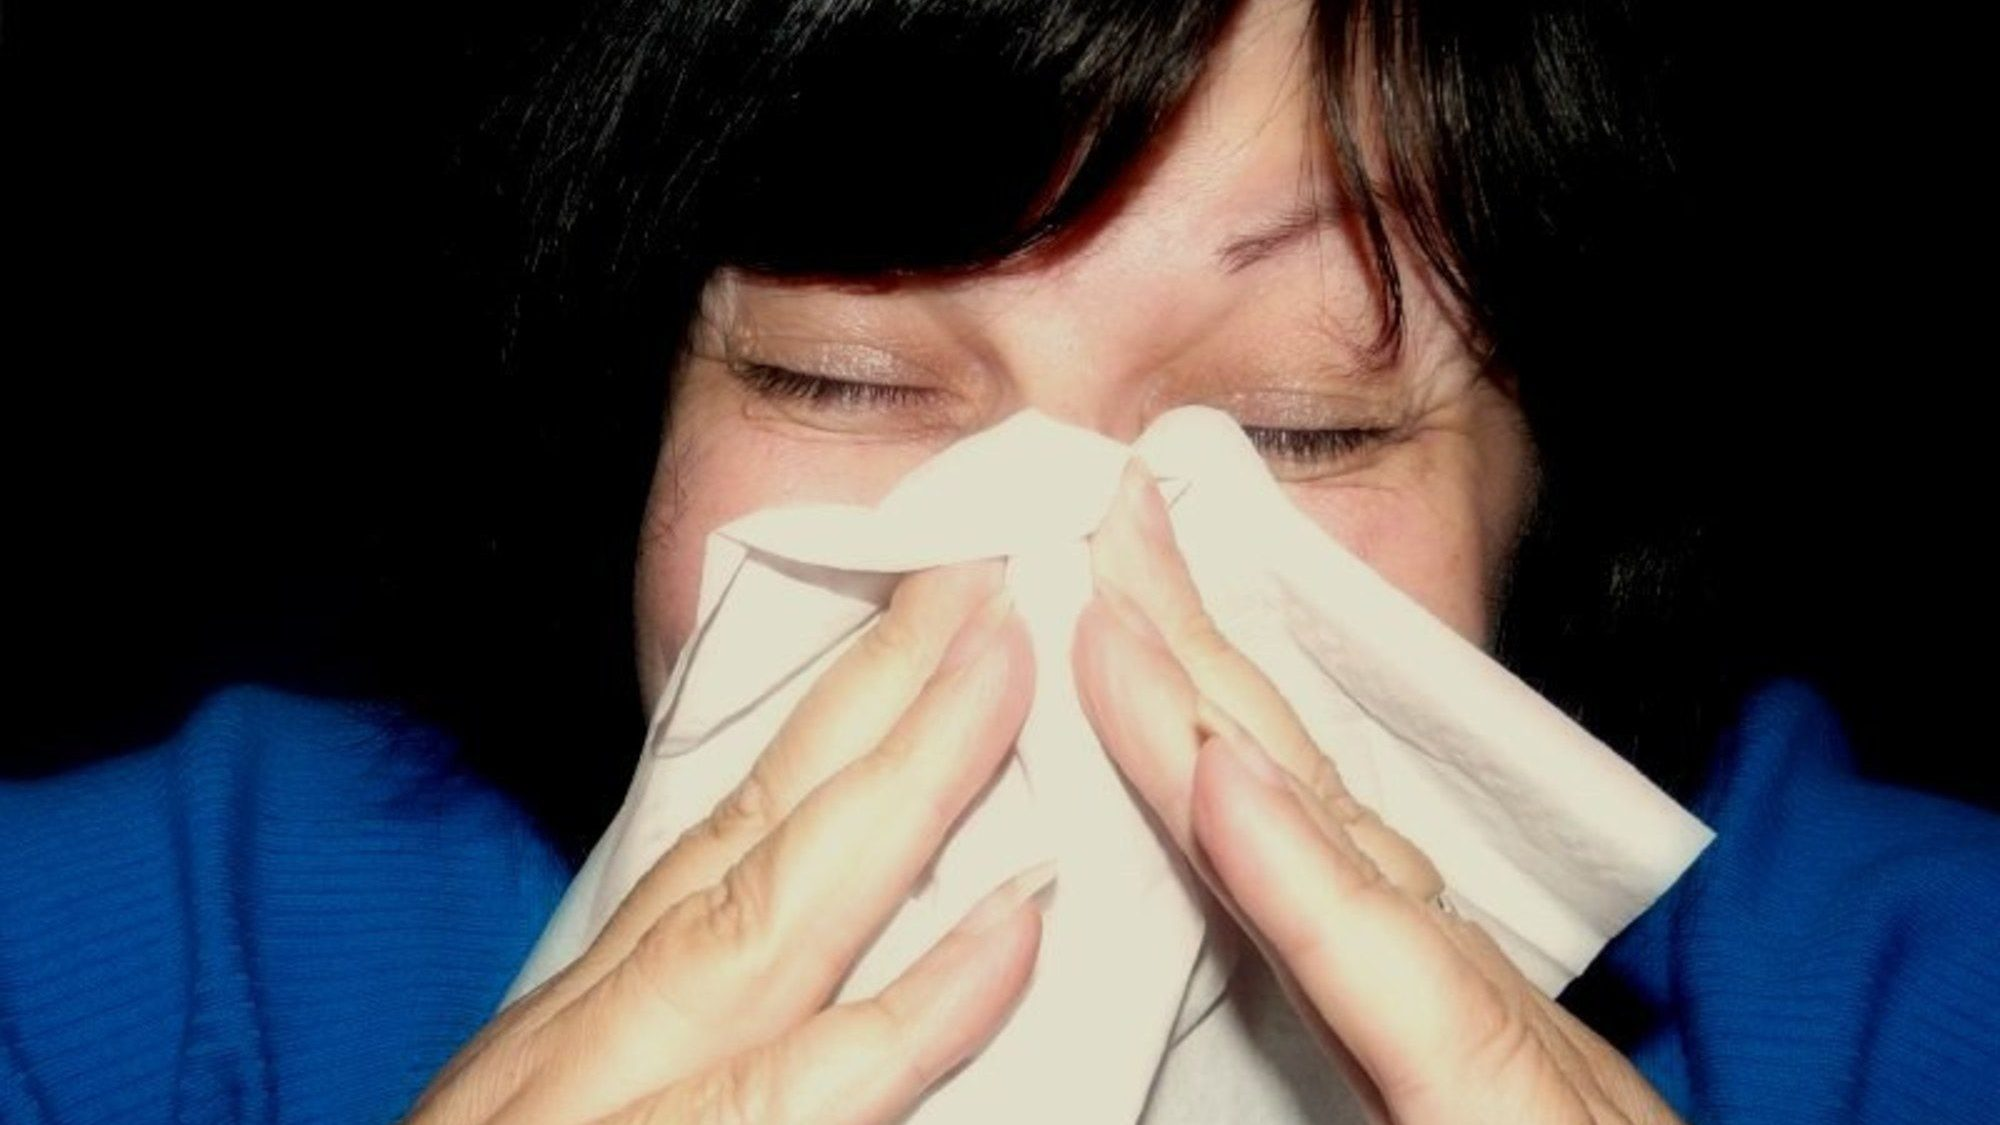 Scientists believe we could have a cure for the common cold within 10 years.